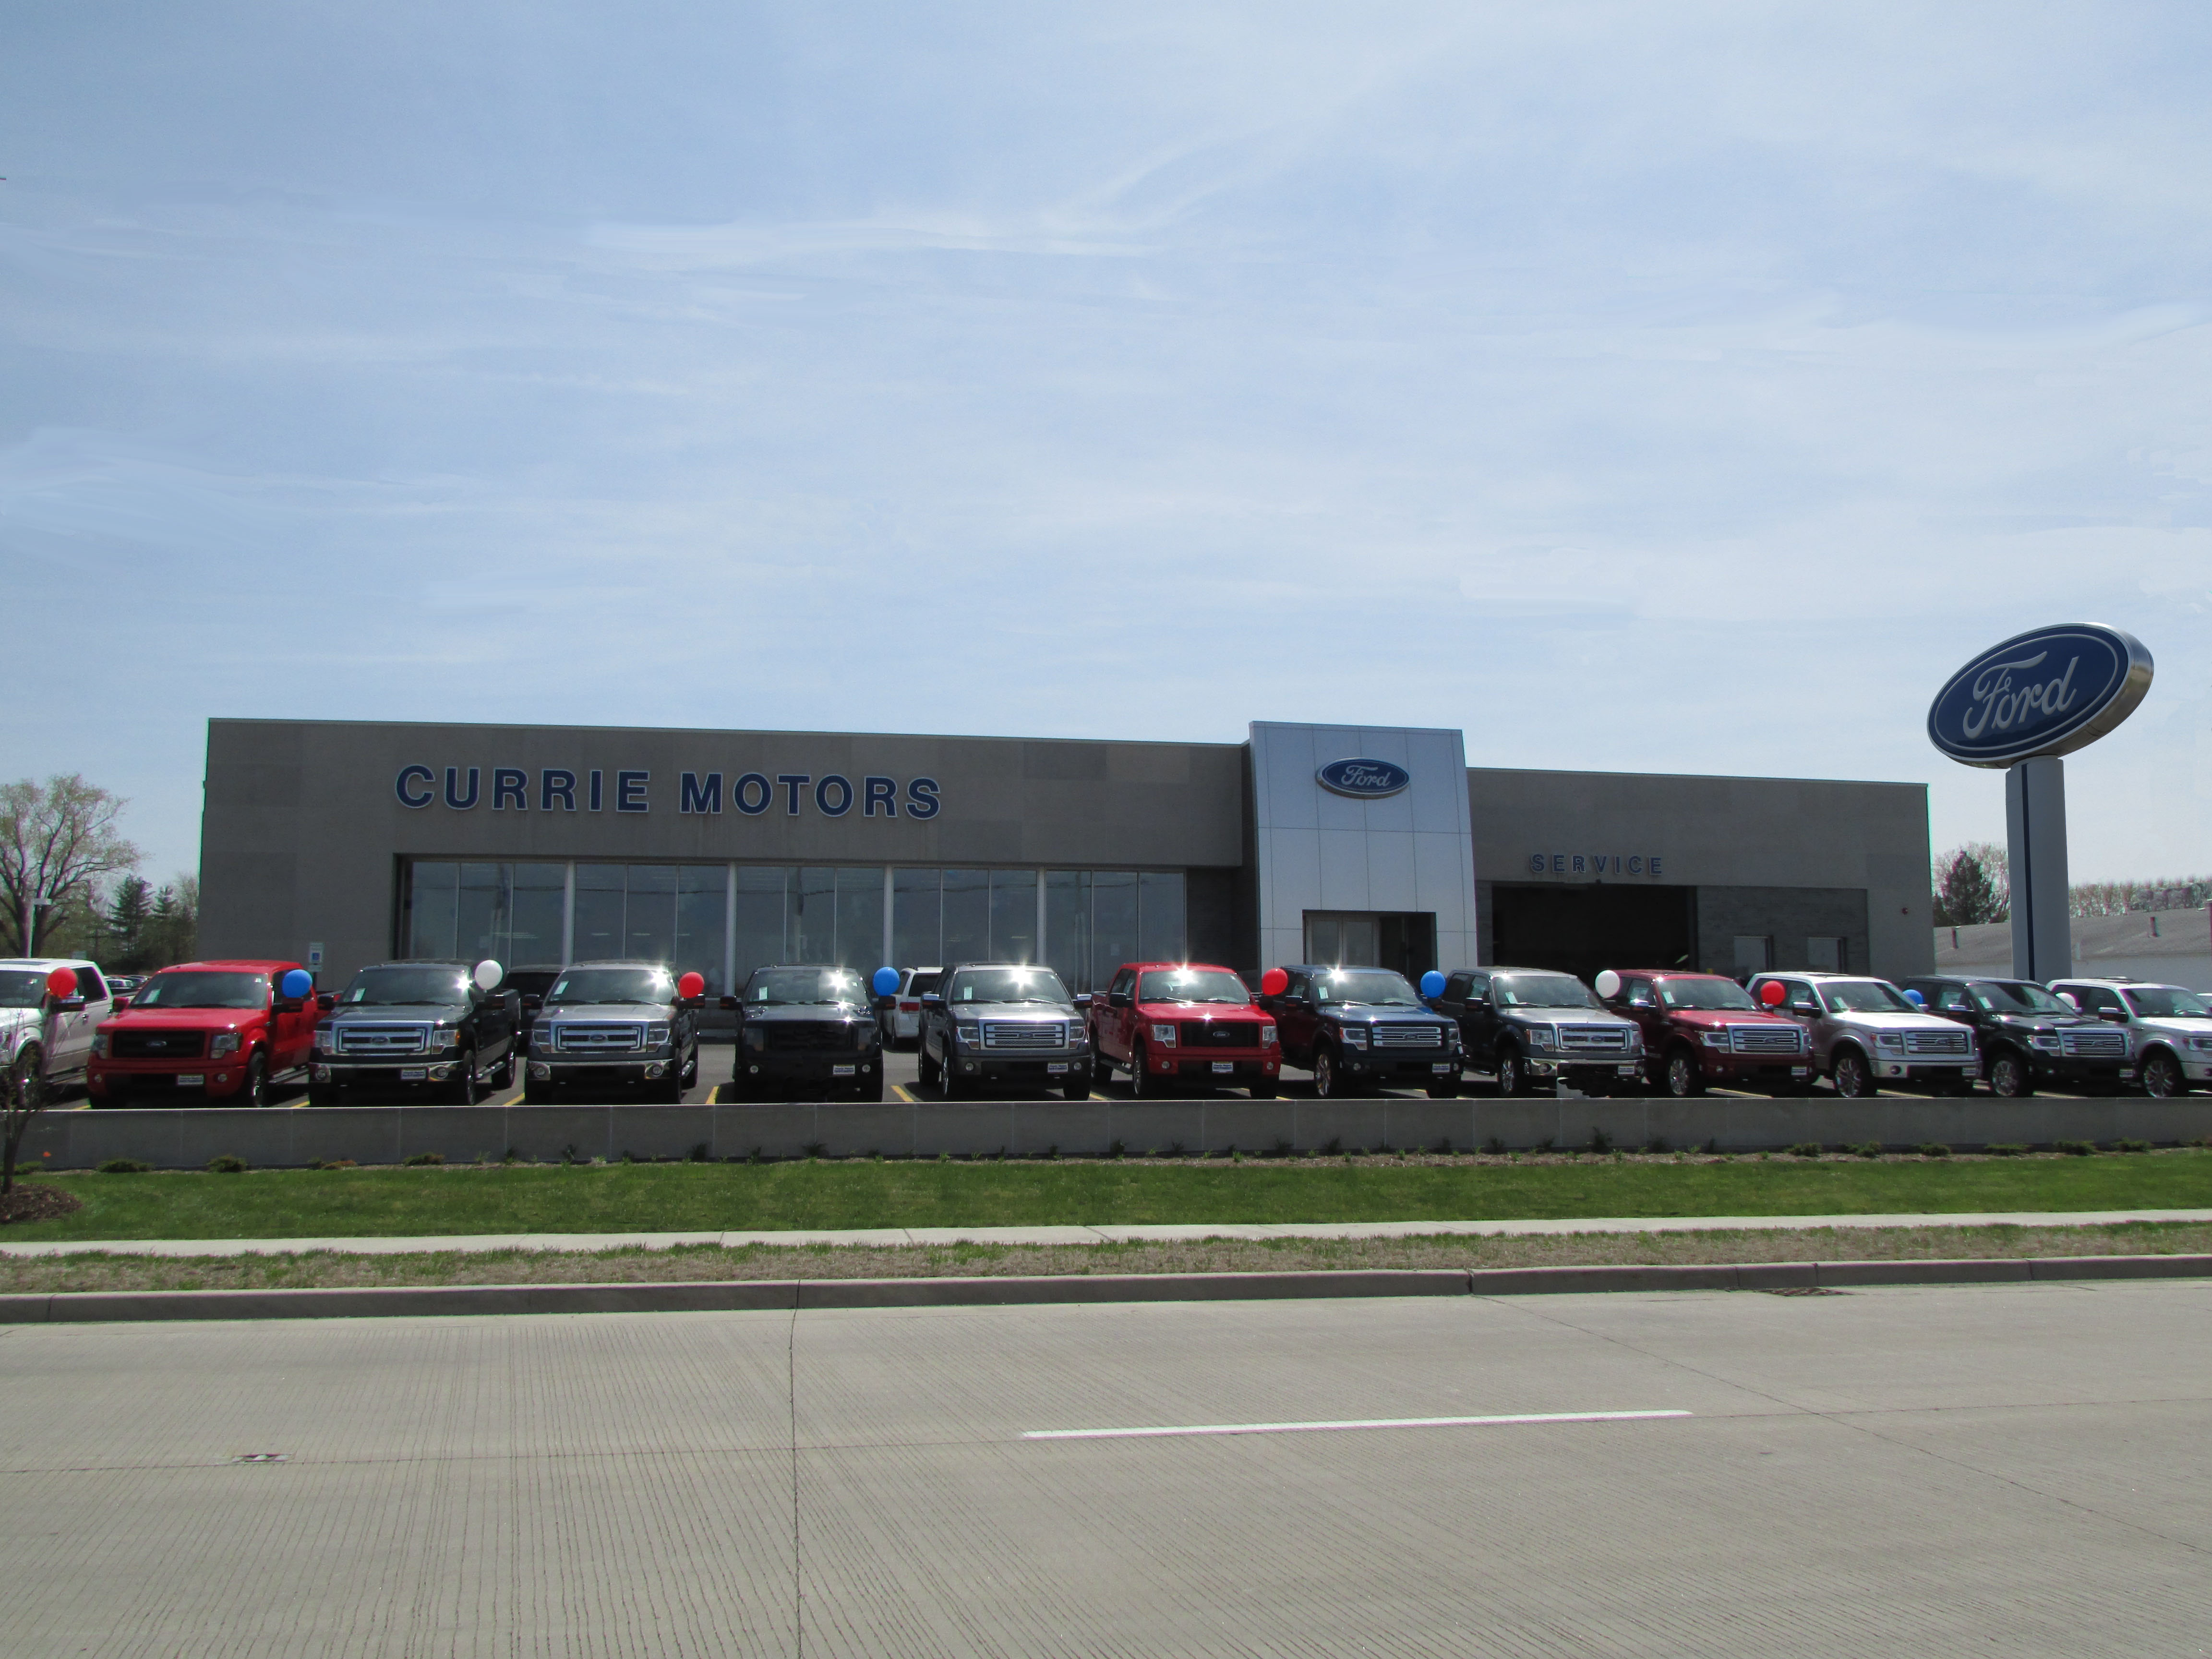 currie motors ford in frankfort il 60423